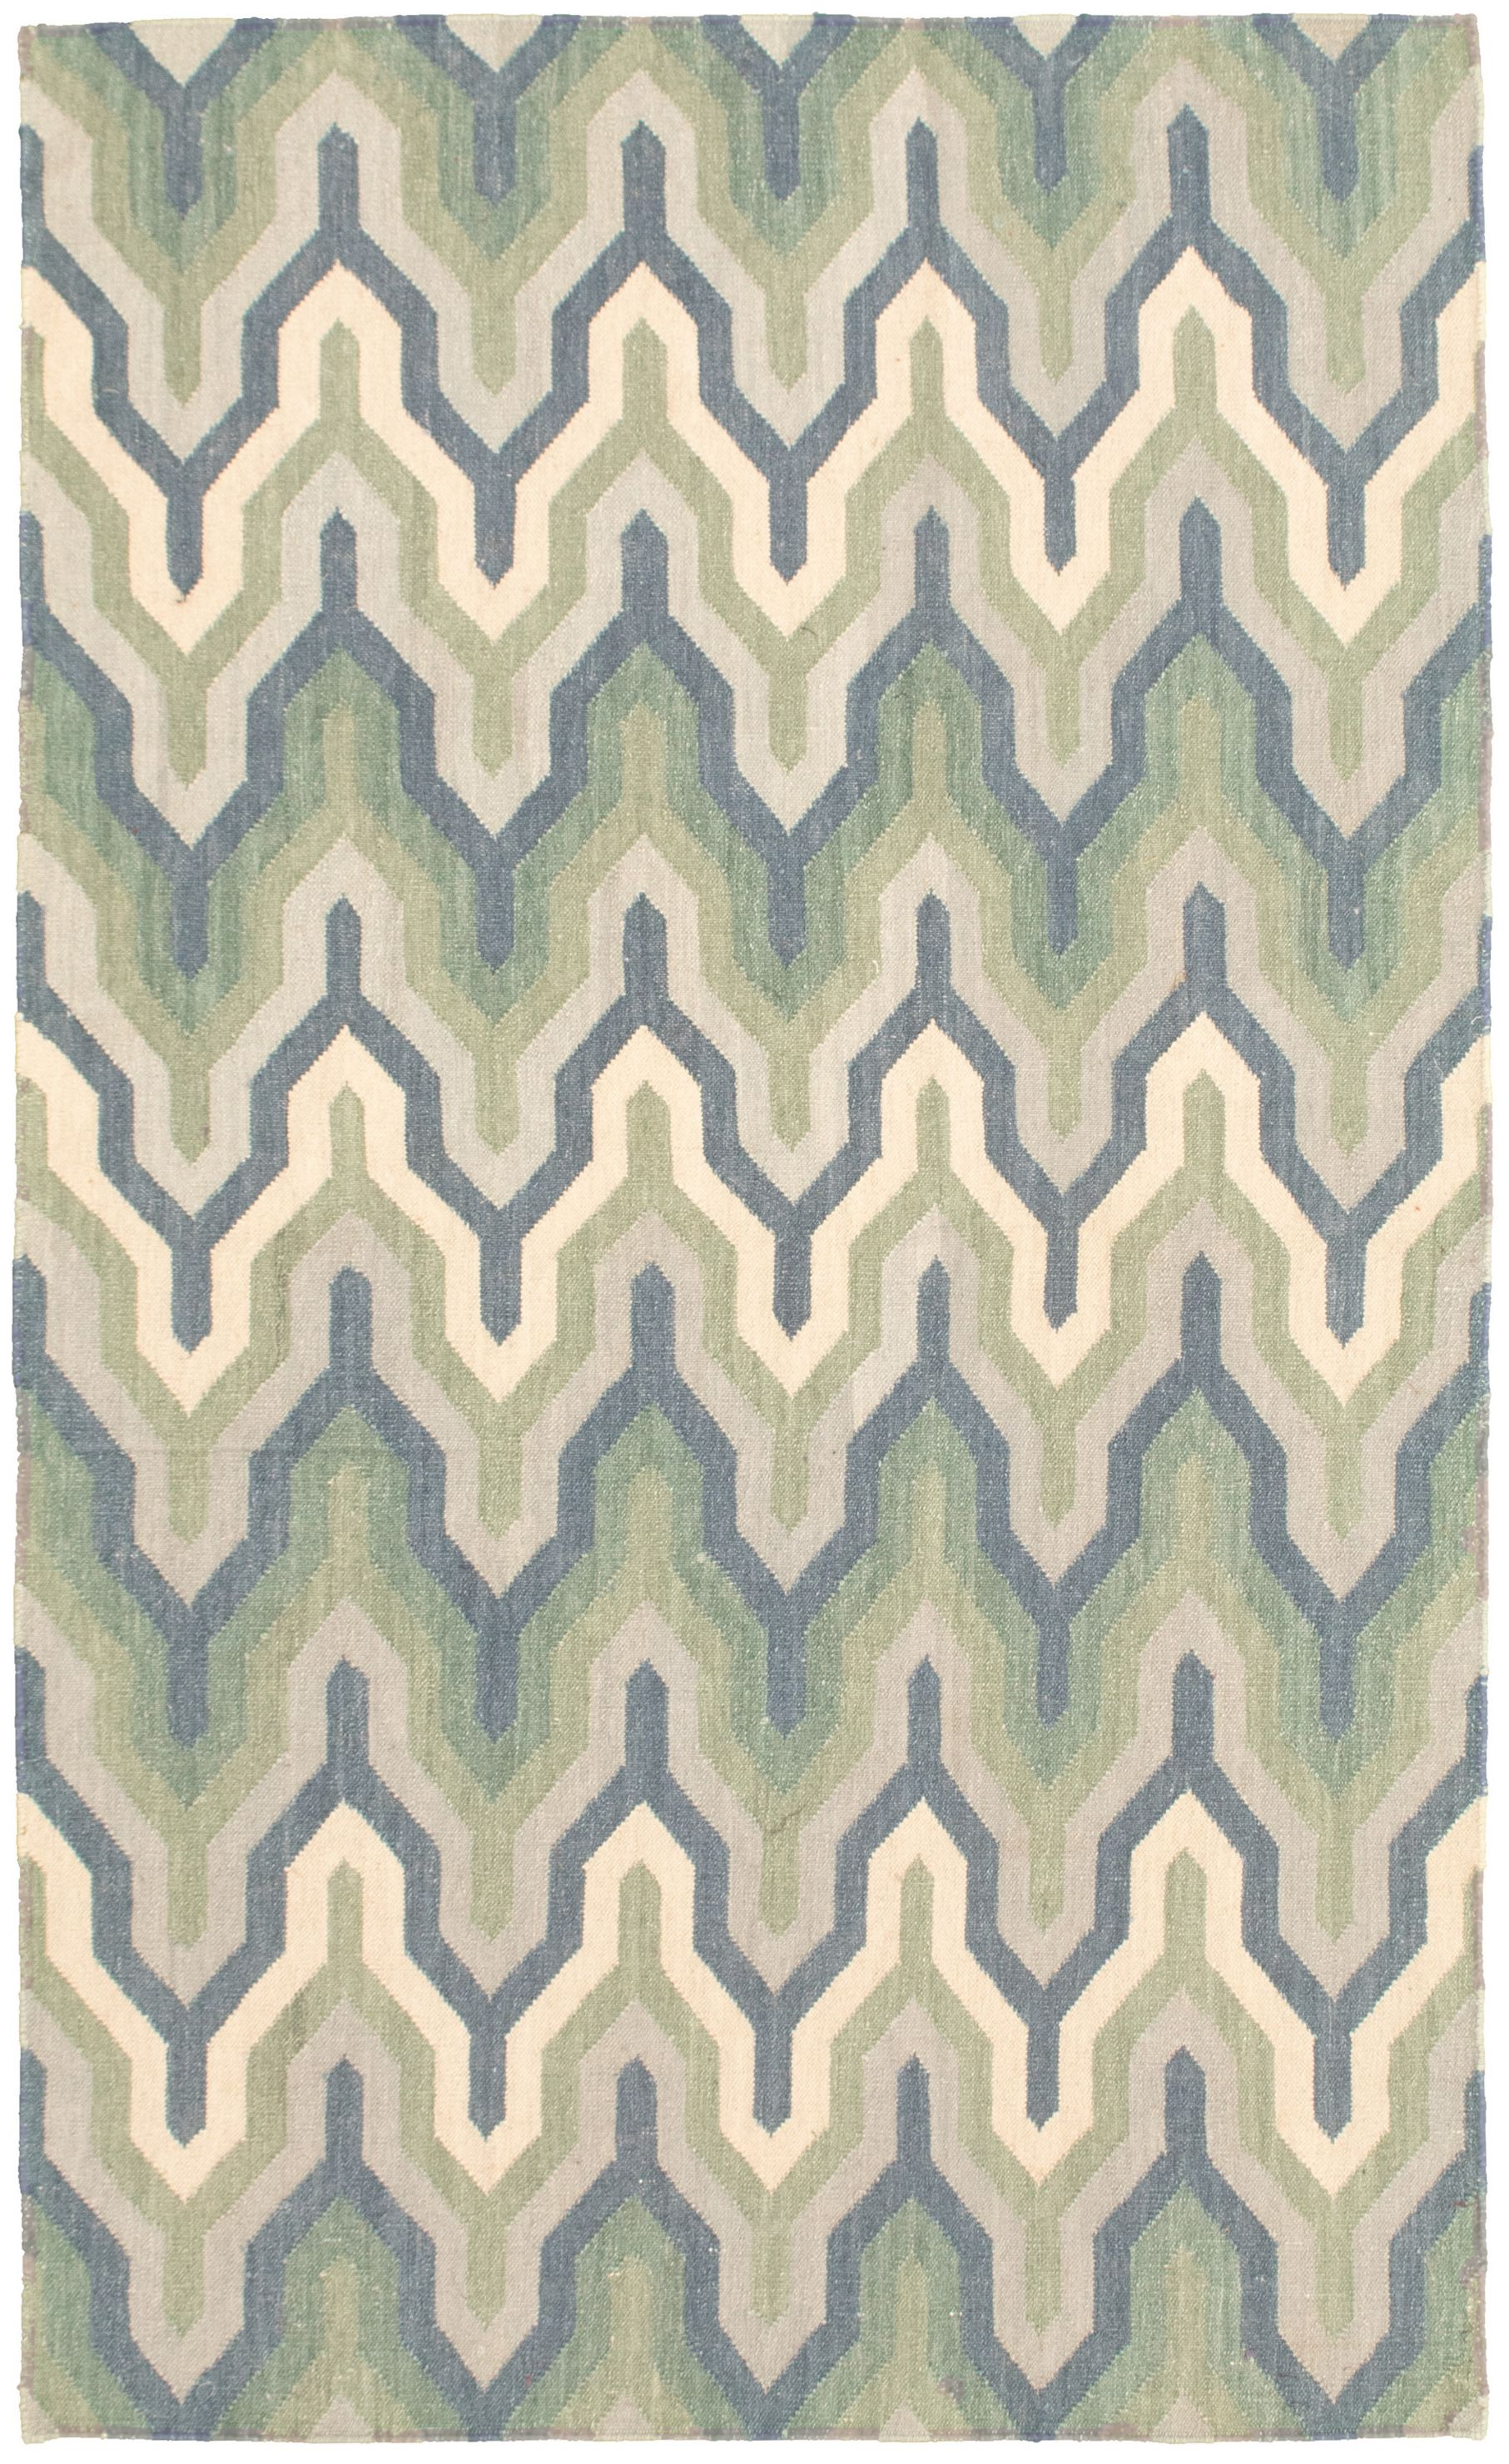 """Hand woven Pure & Organic Navy Blue, Olive Wool Kilim 4'11"""" x 8'3"""" Size: 4'11"""" x 8'3"""""""